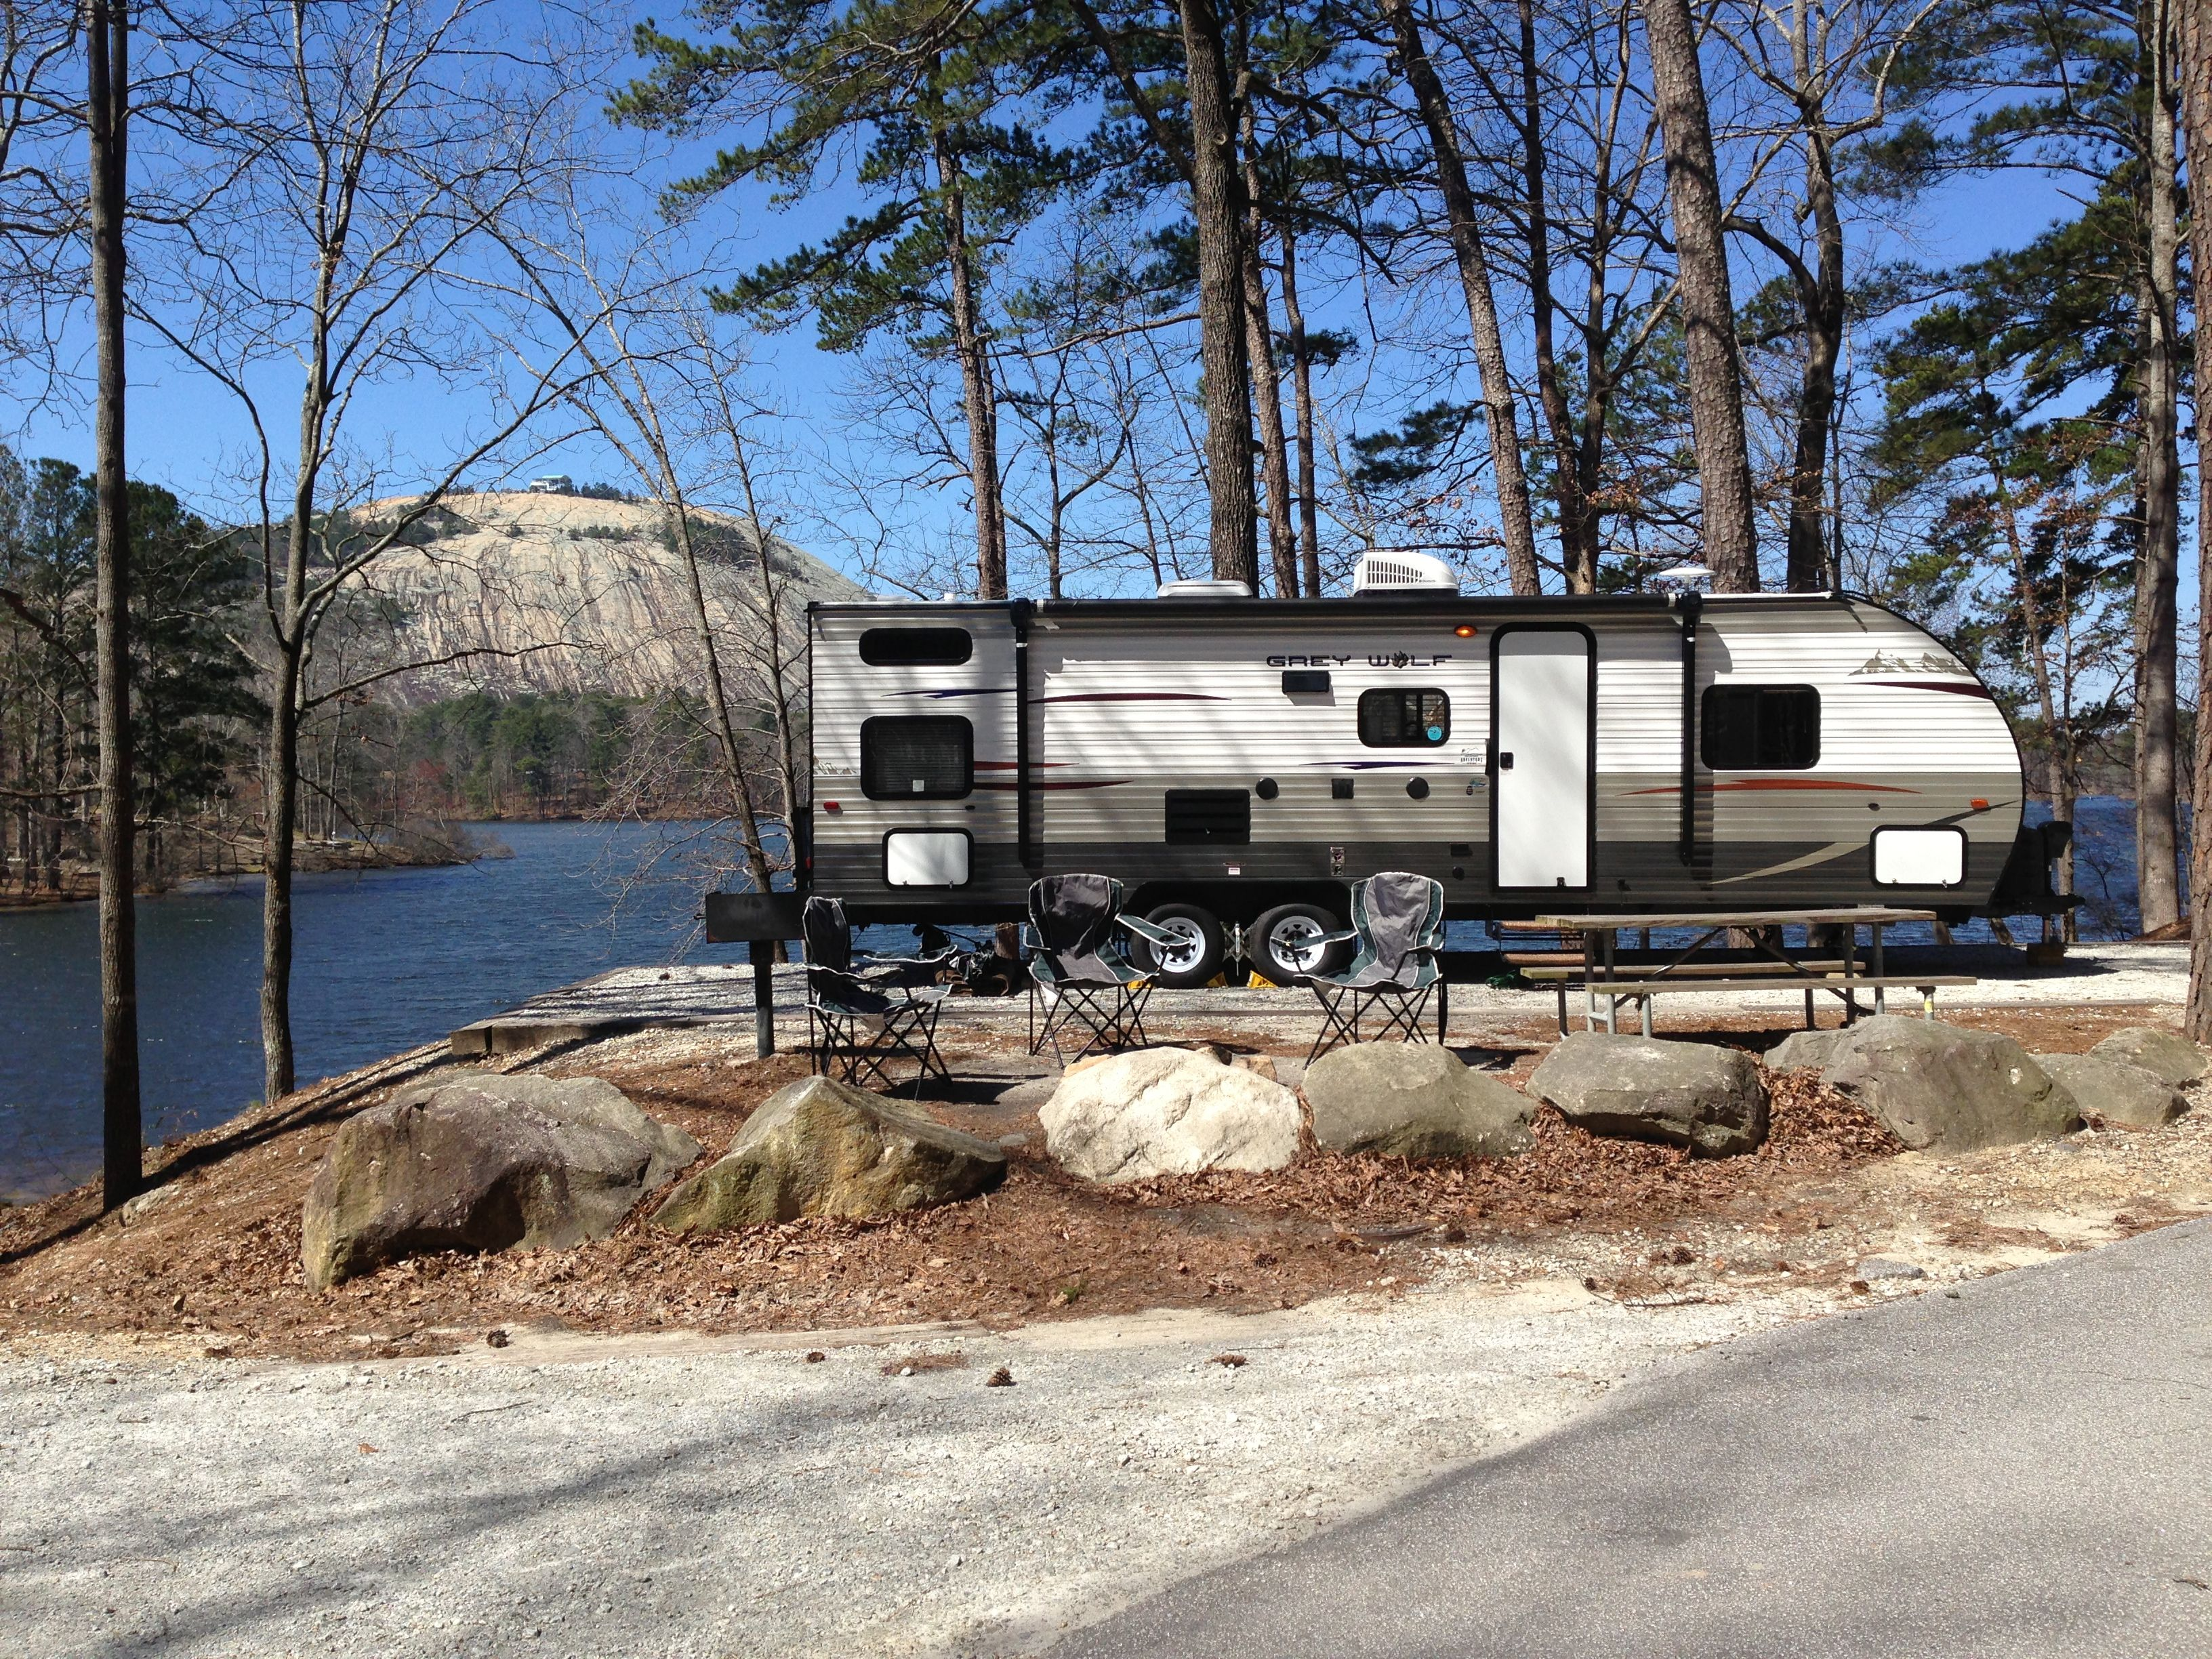 RV Rentals Atlanta Stone Mountain Georgia Valet Rental LLC Specializes In Delivering And Setting Up Fully Furnished Travel Trailers Exclusively At